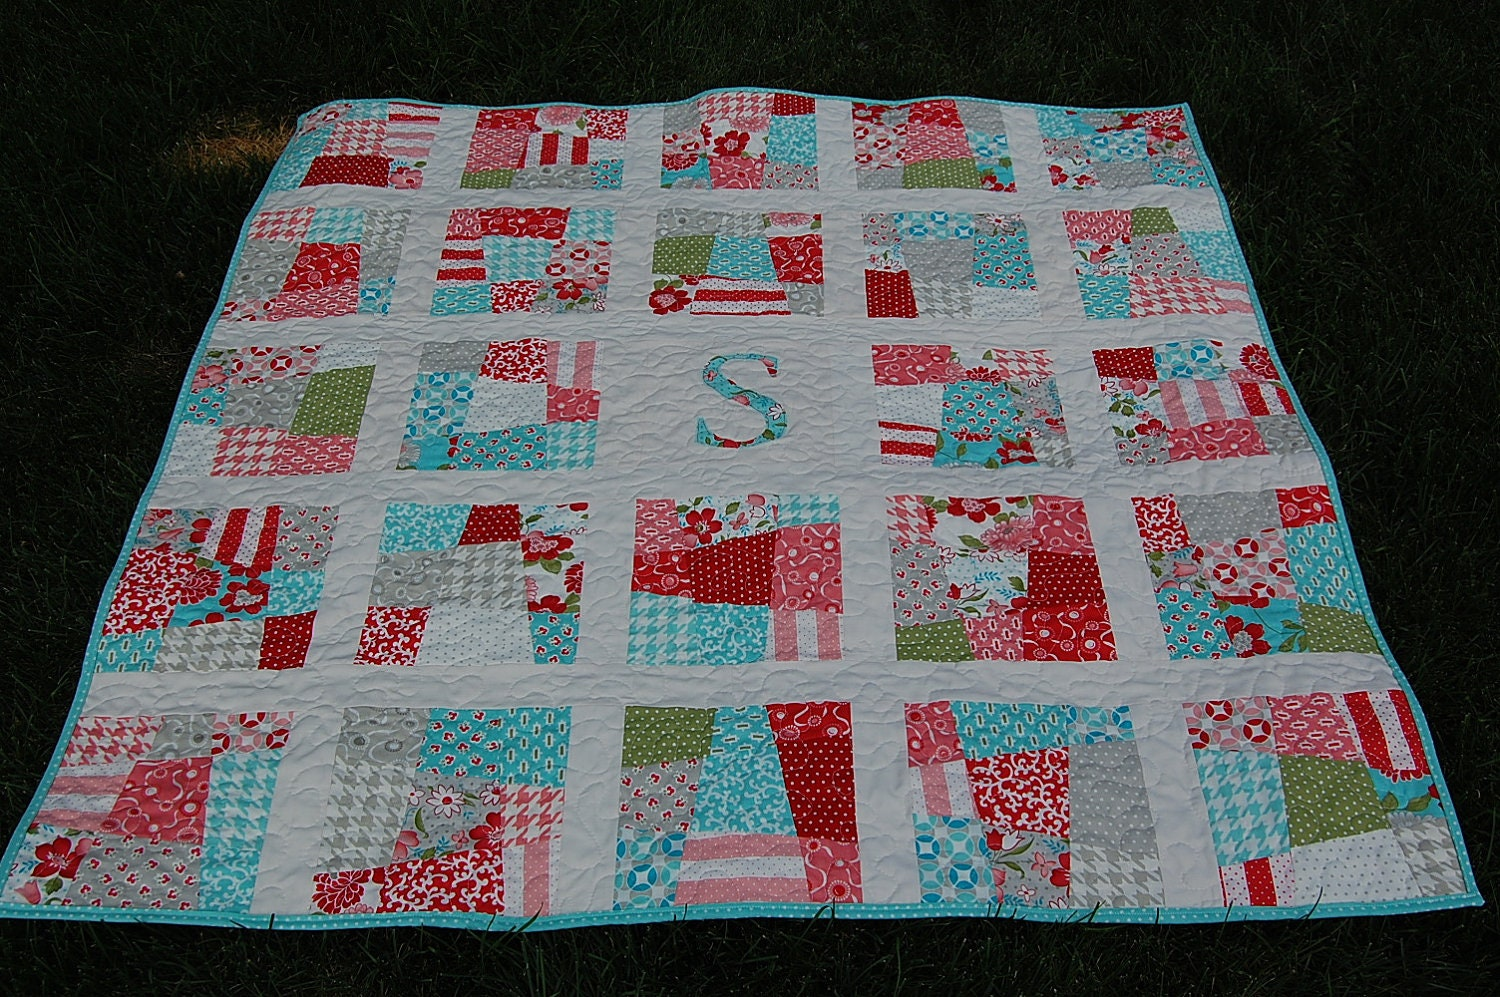 Free Patterns For Baby Patchwork Quilt : Scrappy Initial Patchwork Quilt PaTTERN PDF - Baby Quilt - Lap Quilt - Fat Quarters ...